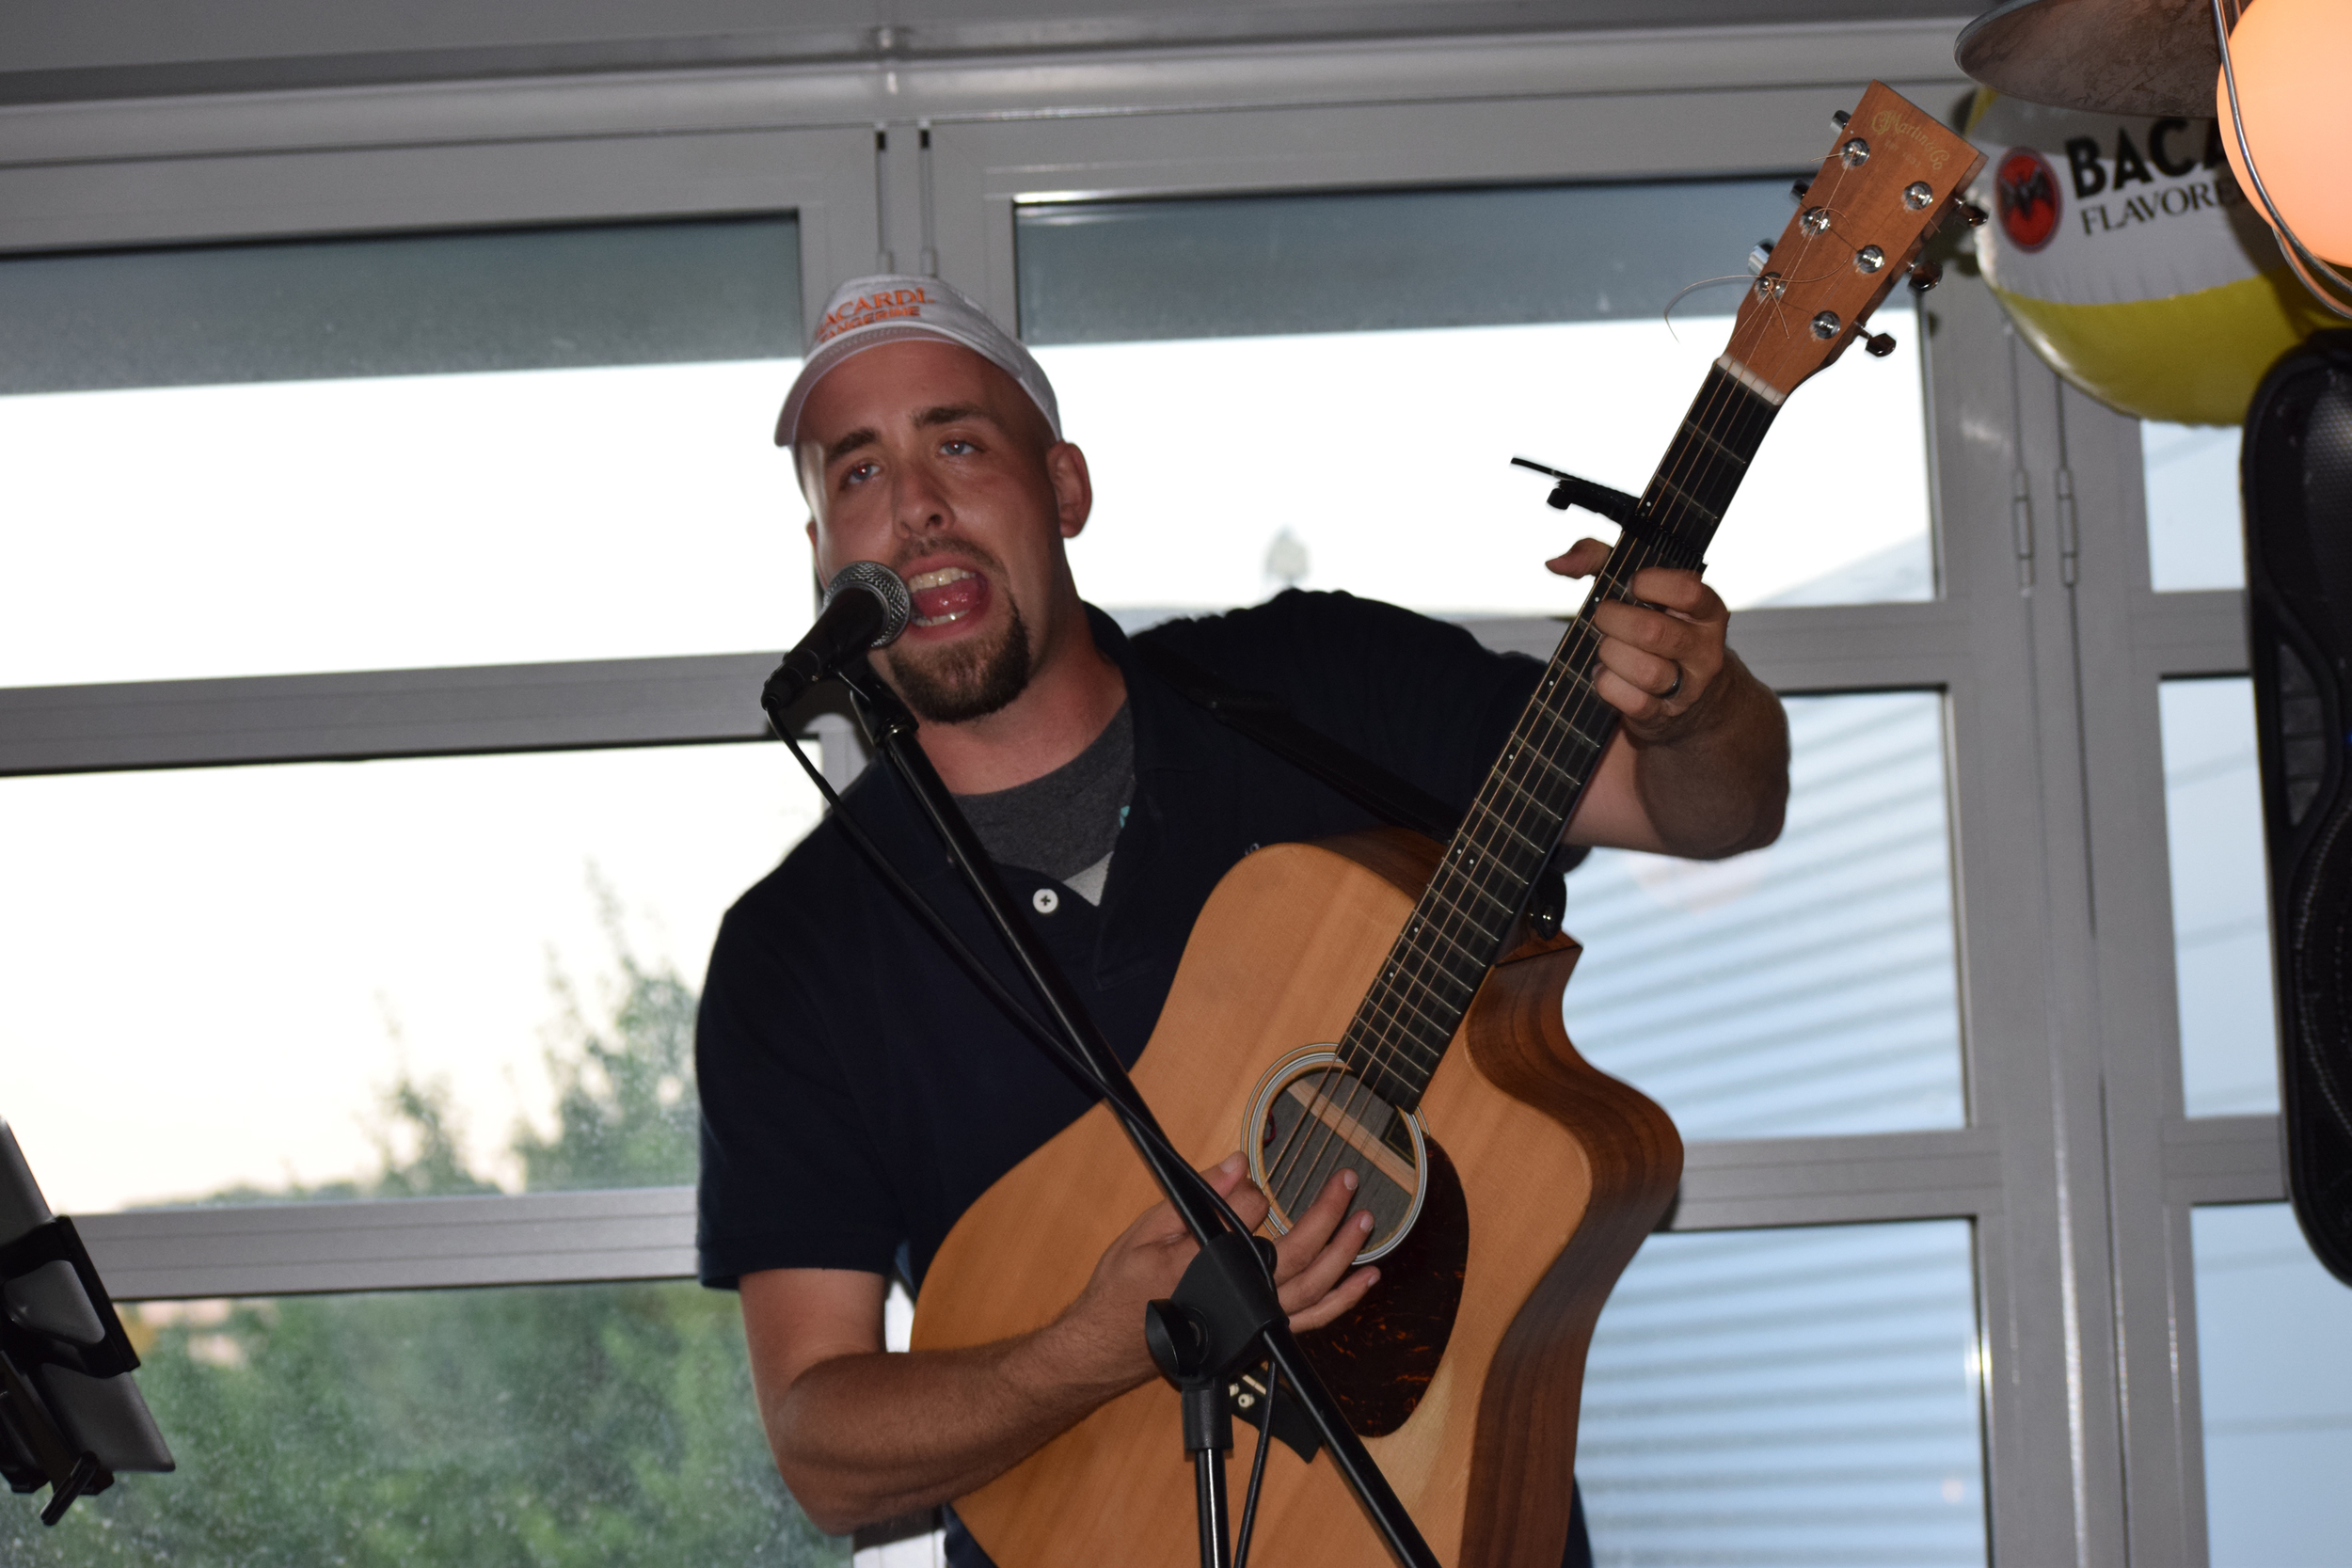 Adam Martin performing at Welcome Reception